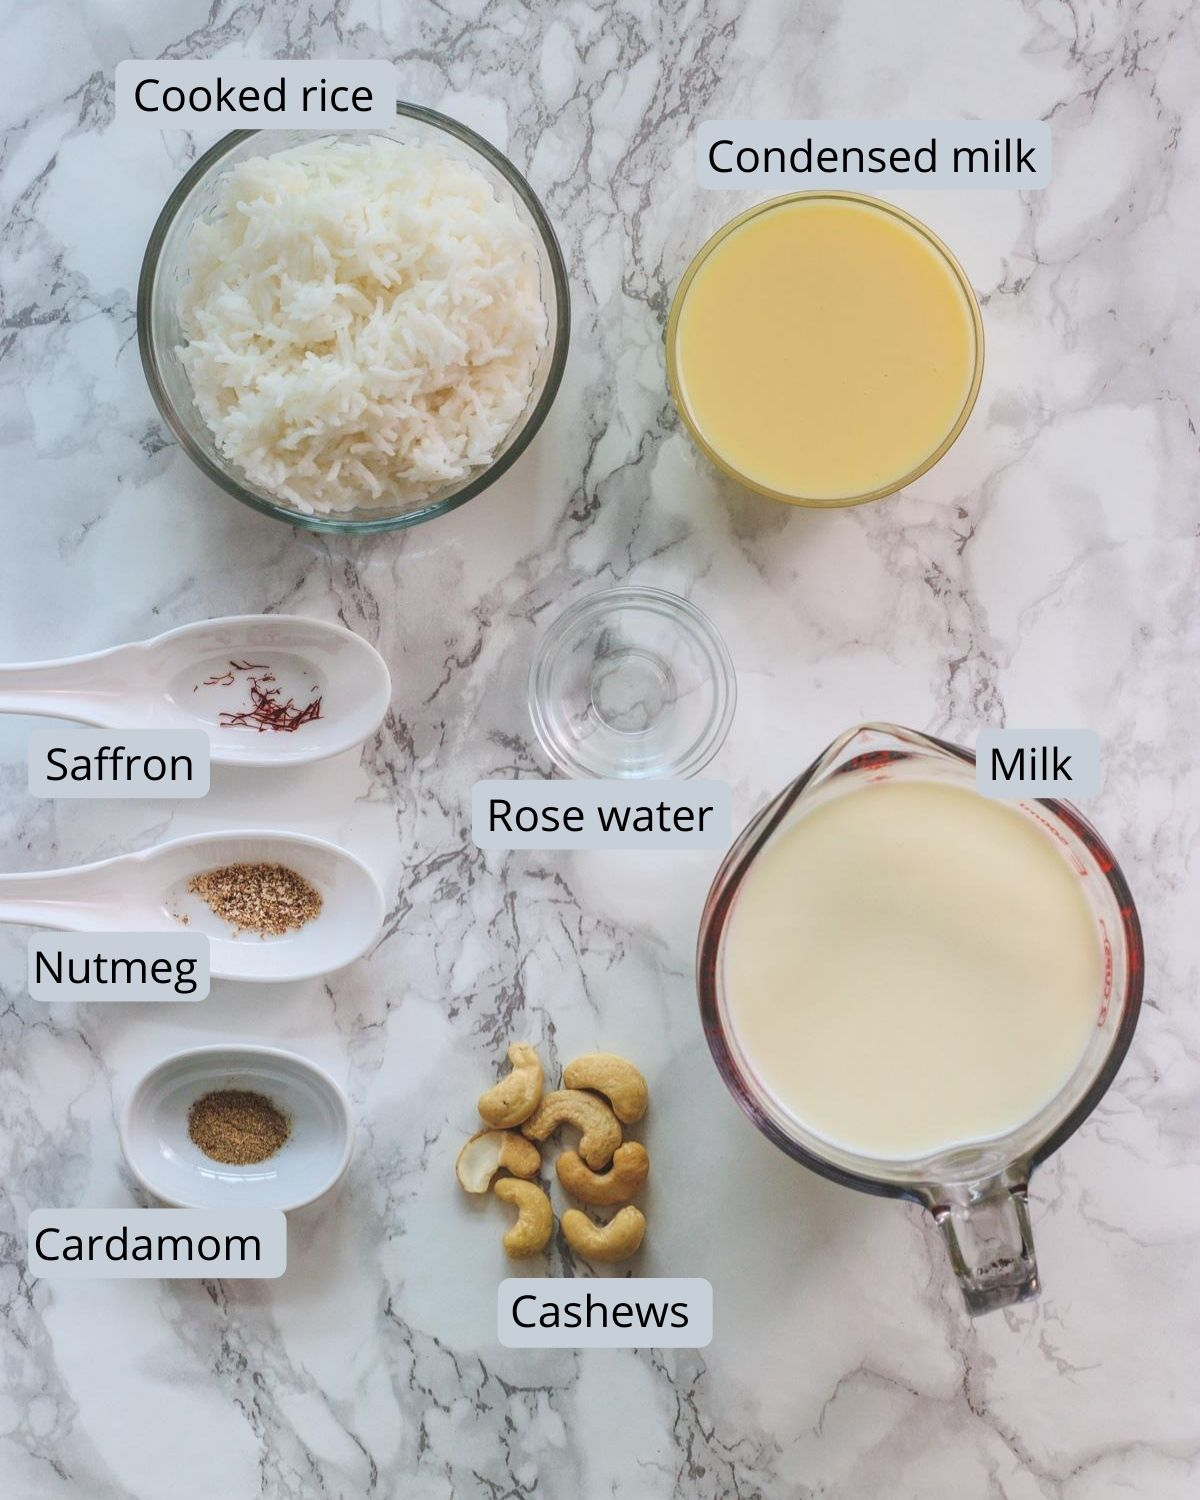 ingredients used in kheer includes cooked rice, condensed milk, milk, cashews, saffron, nutmeg, cardamom, rose water